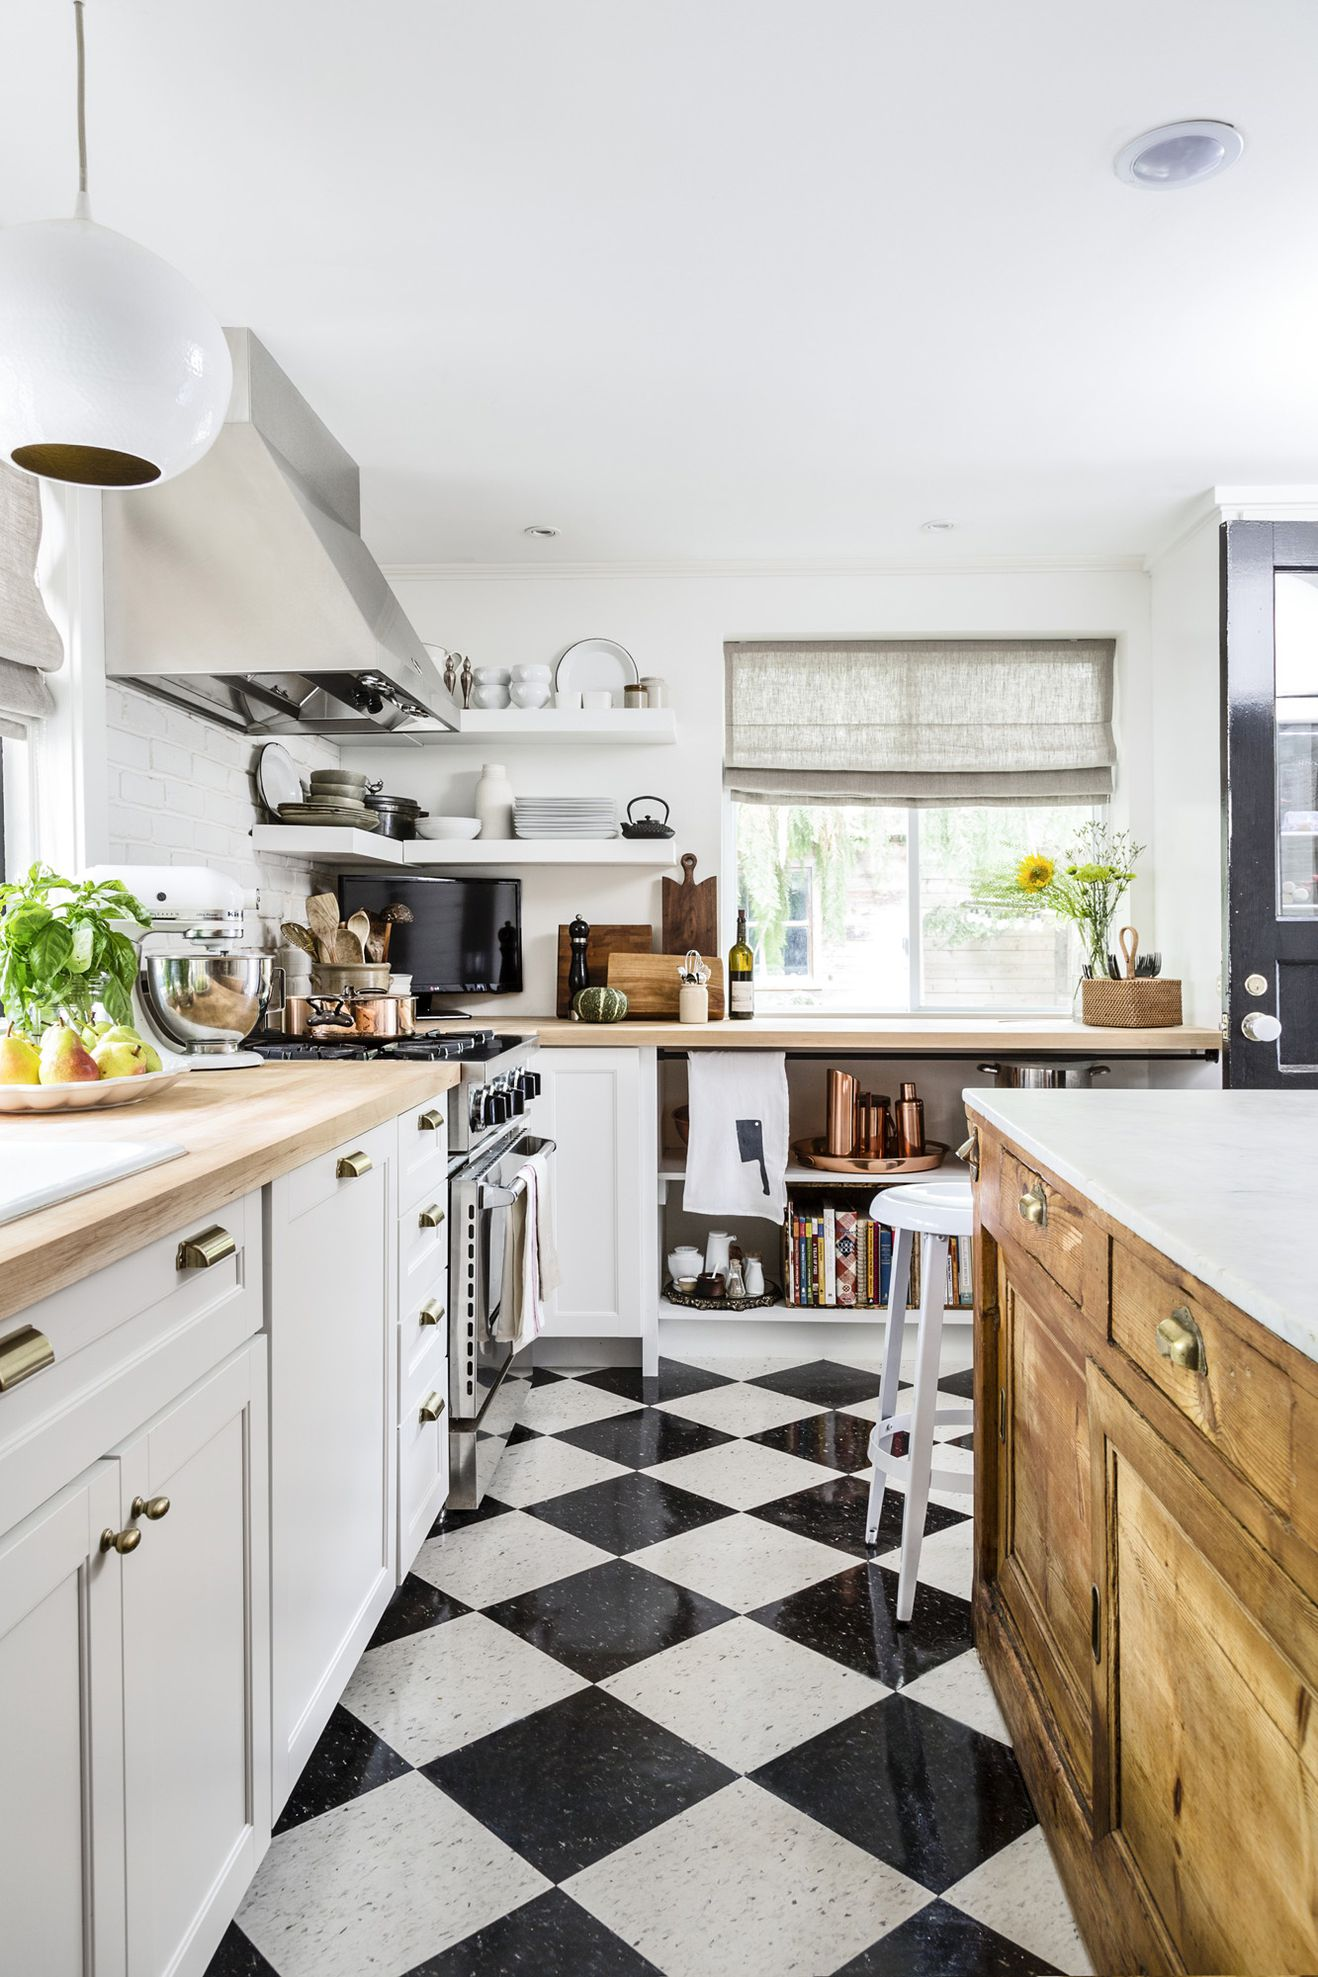 Country Kitchen Tiles · Image Reference · Country Kitchen Interior Design